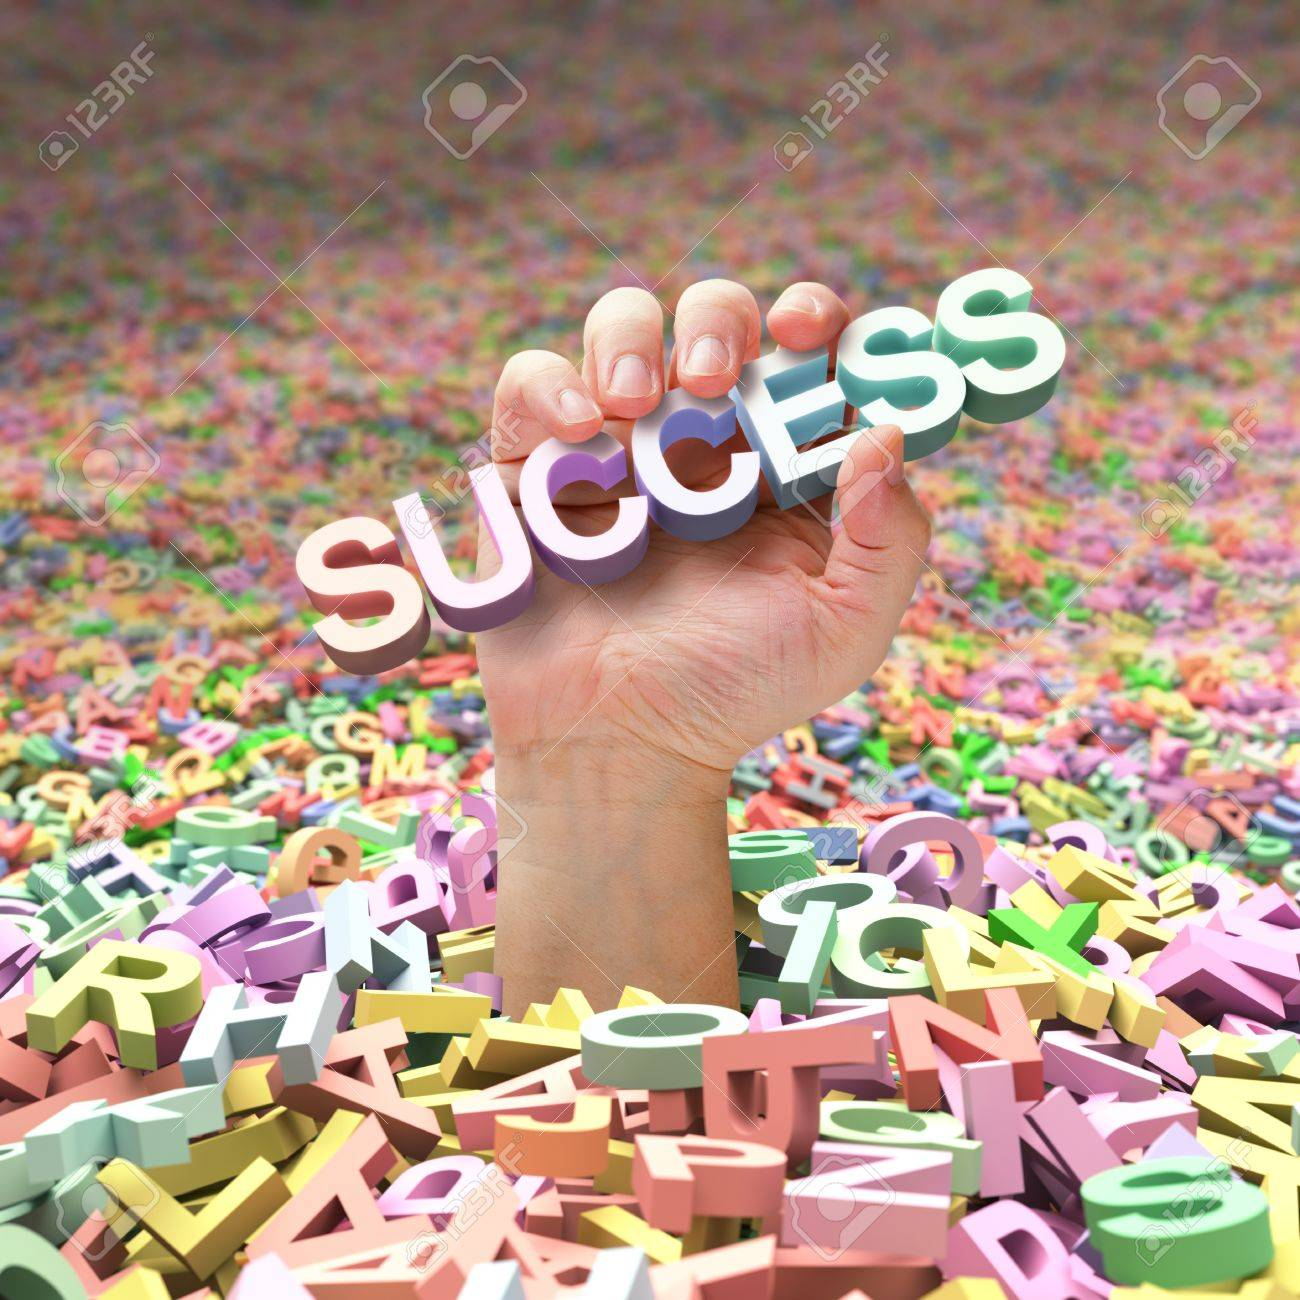 In the middle of an ocean of letters, a hand going up and holding the word success. Concept of the difficulty of finding success in the midst of so many possibilities. Stock Photo - 14613125